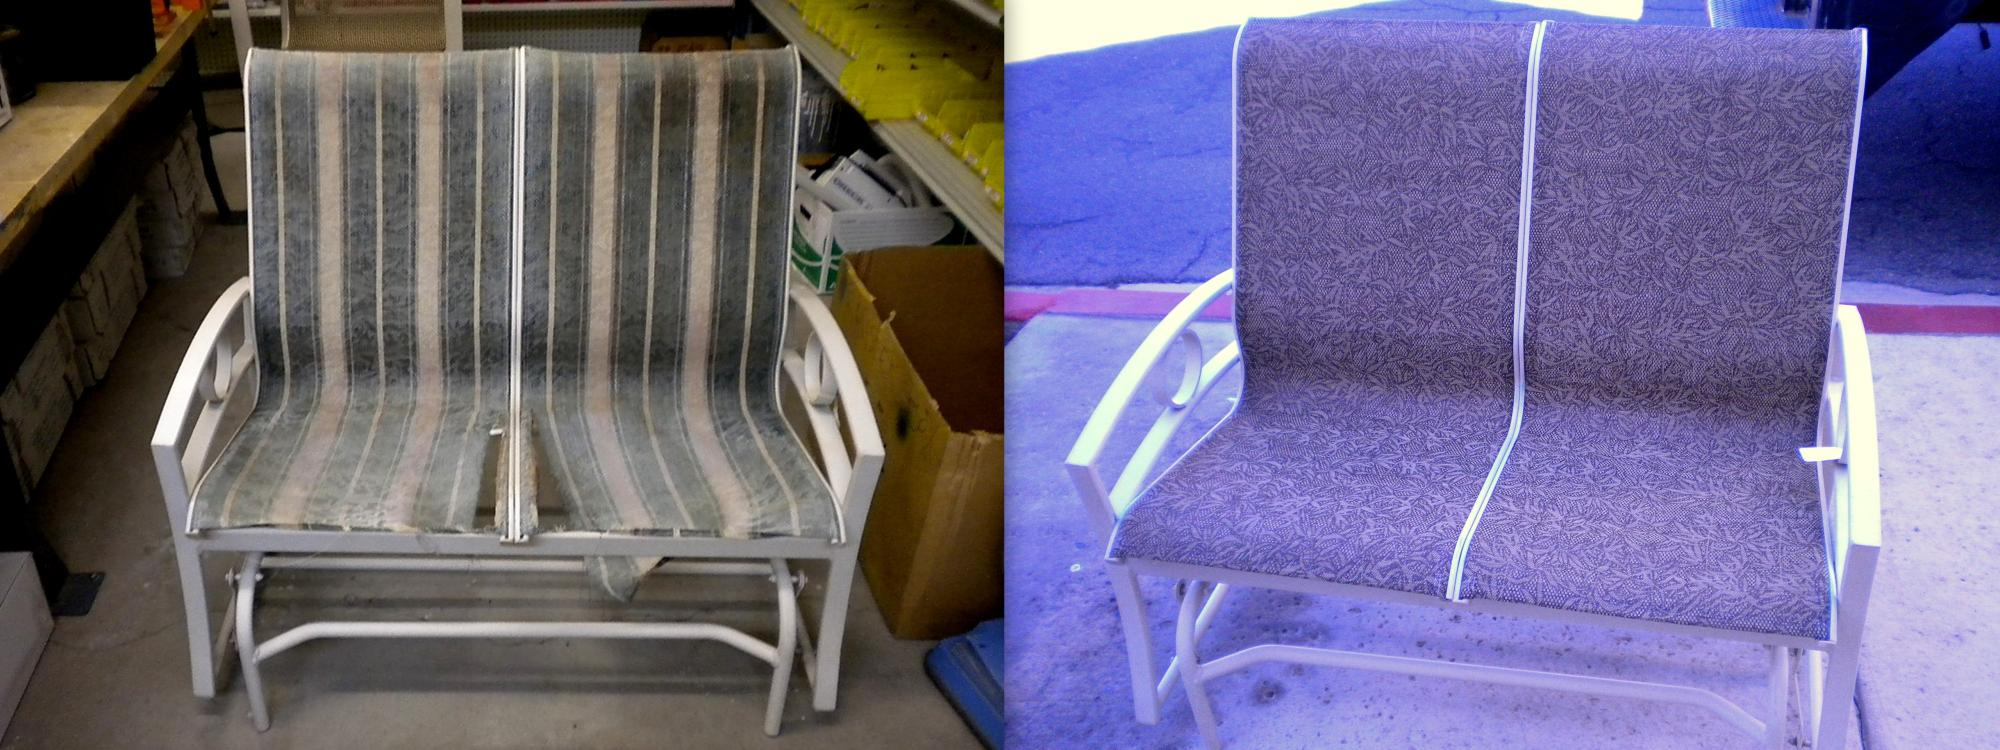 Double Glider Sling Installation ~ Before & After